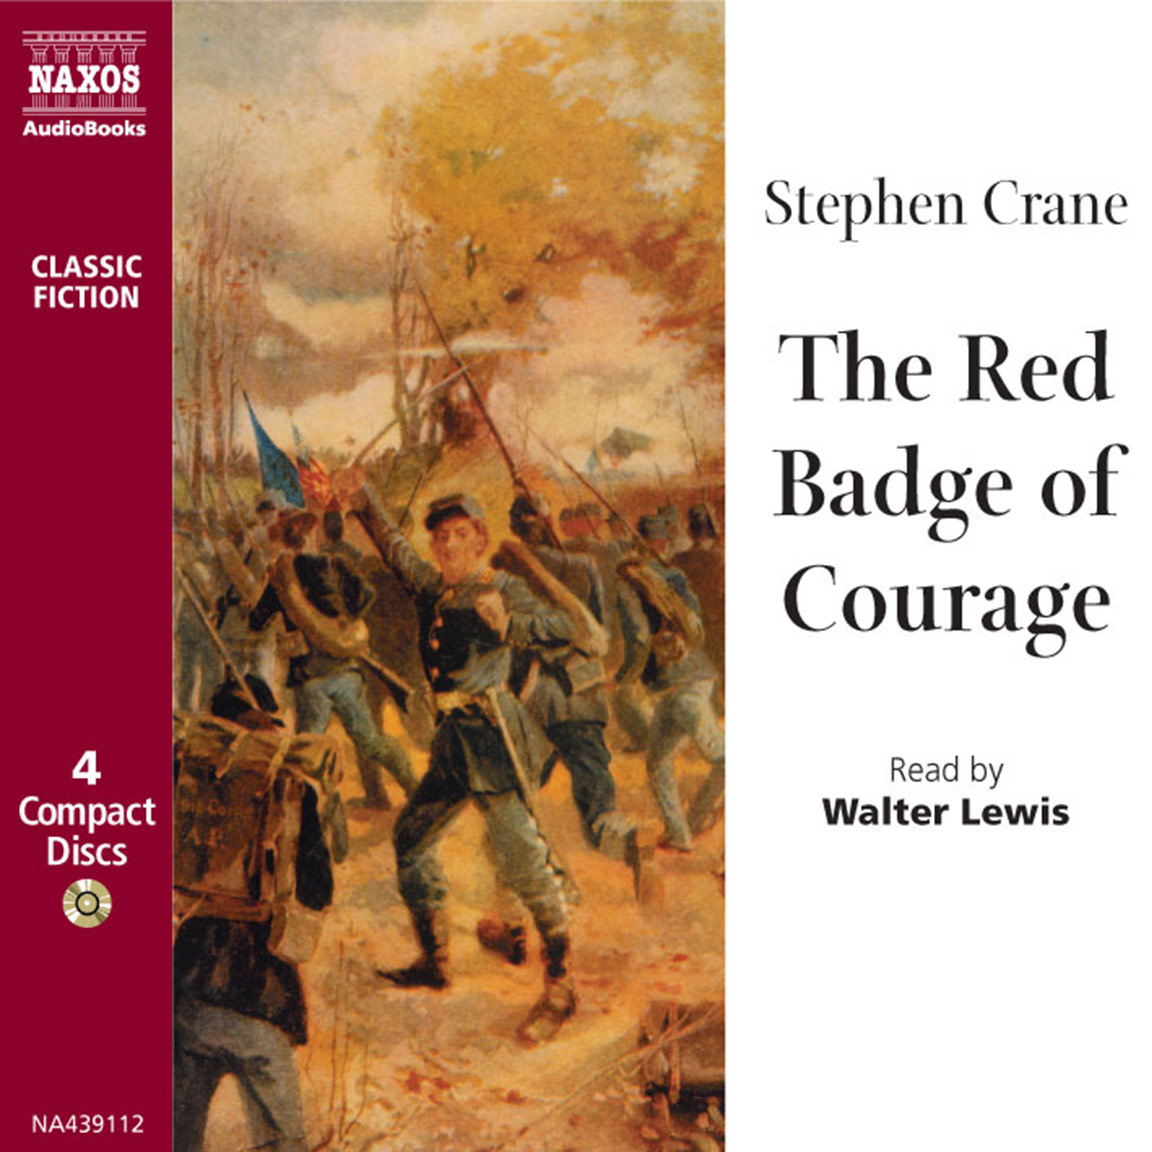 red badge of courage essays heroism The red badge of courage essays are academic essays for citation  the  statue off its pedestal: stephen crane's notions of heroism nathaniel popper.